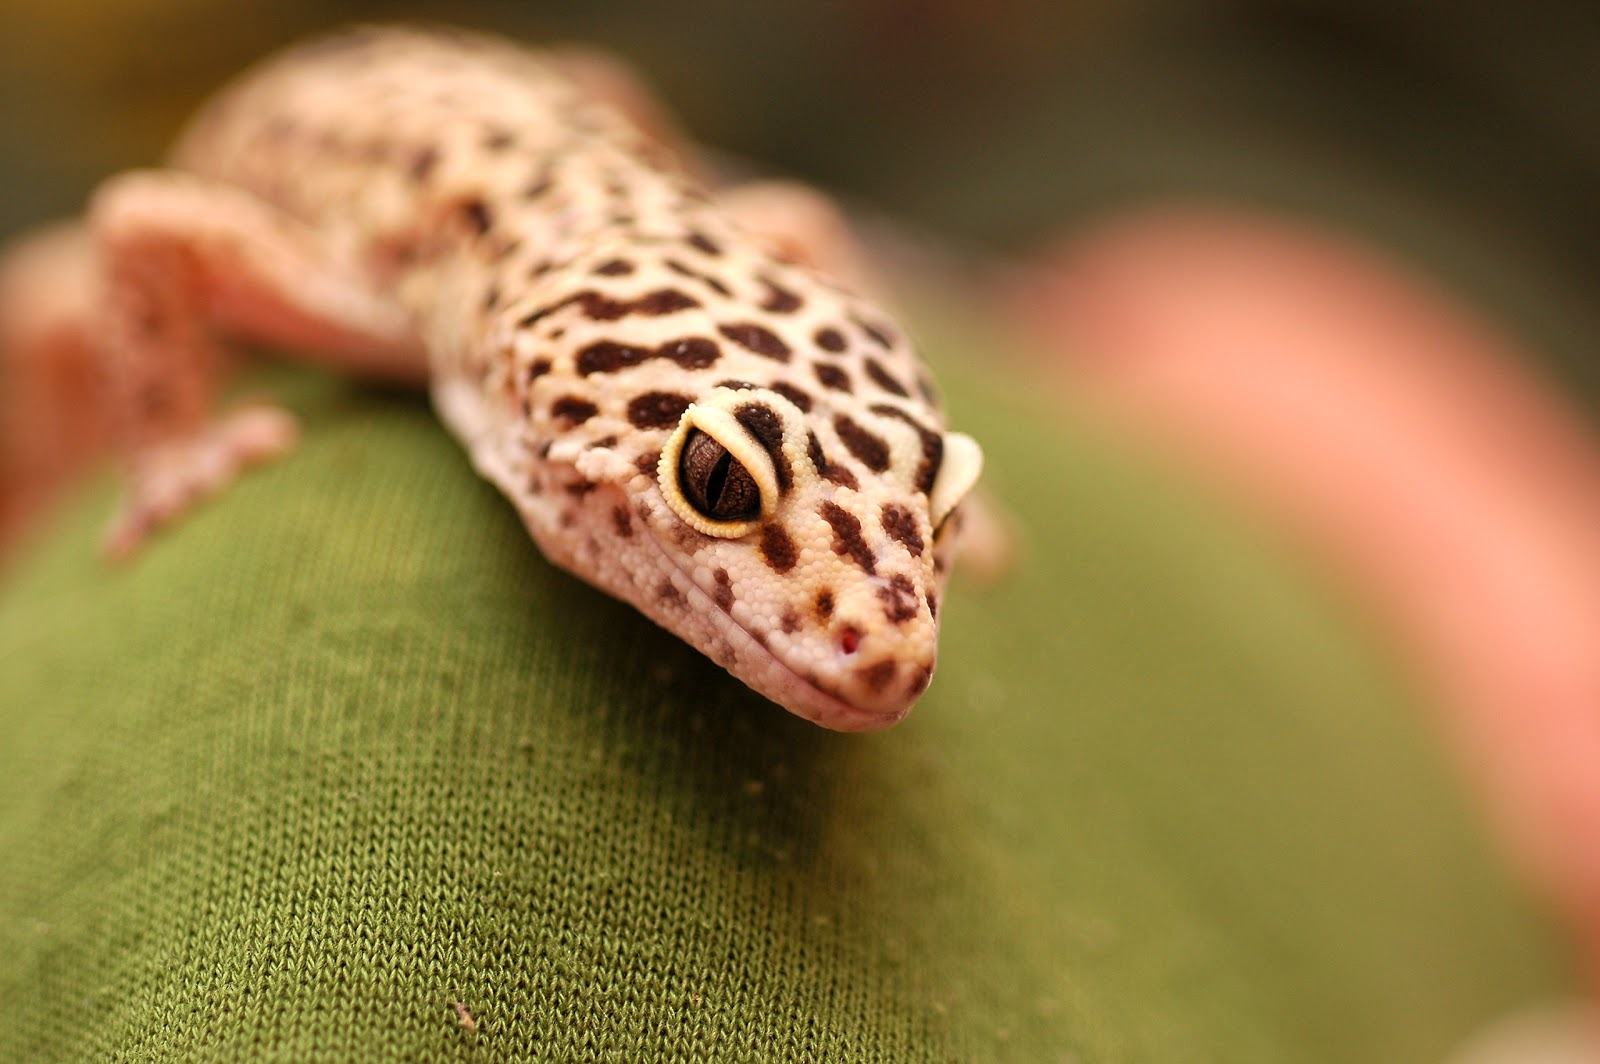 leopard gecko Most people only think about the wild type when it comes to leopard gecko colors learn about the variety of color morphs that exist.